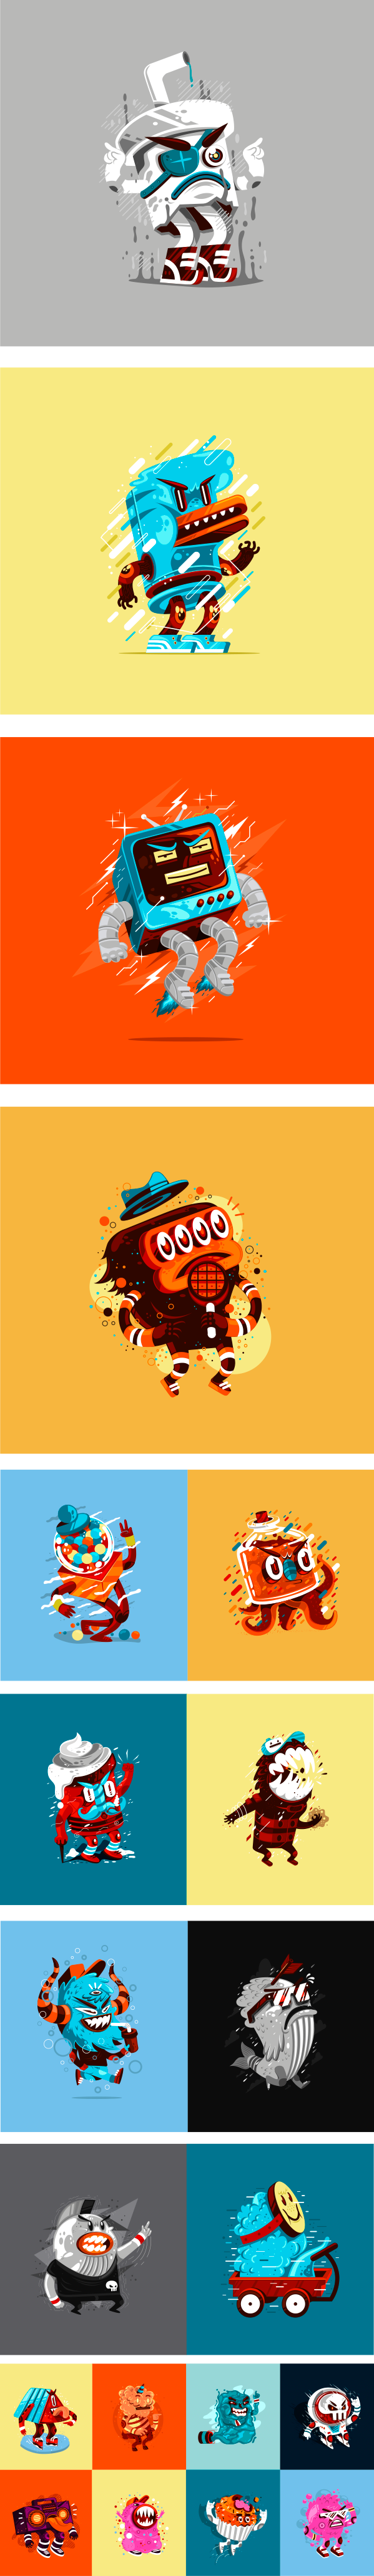 Sweet Monsters Company on Behance Game icon design